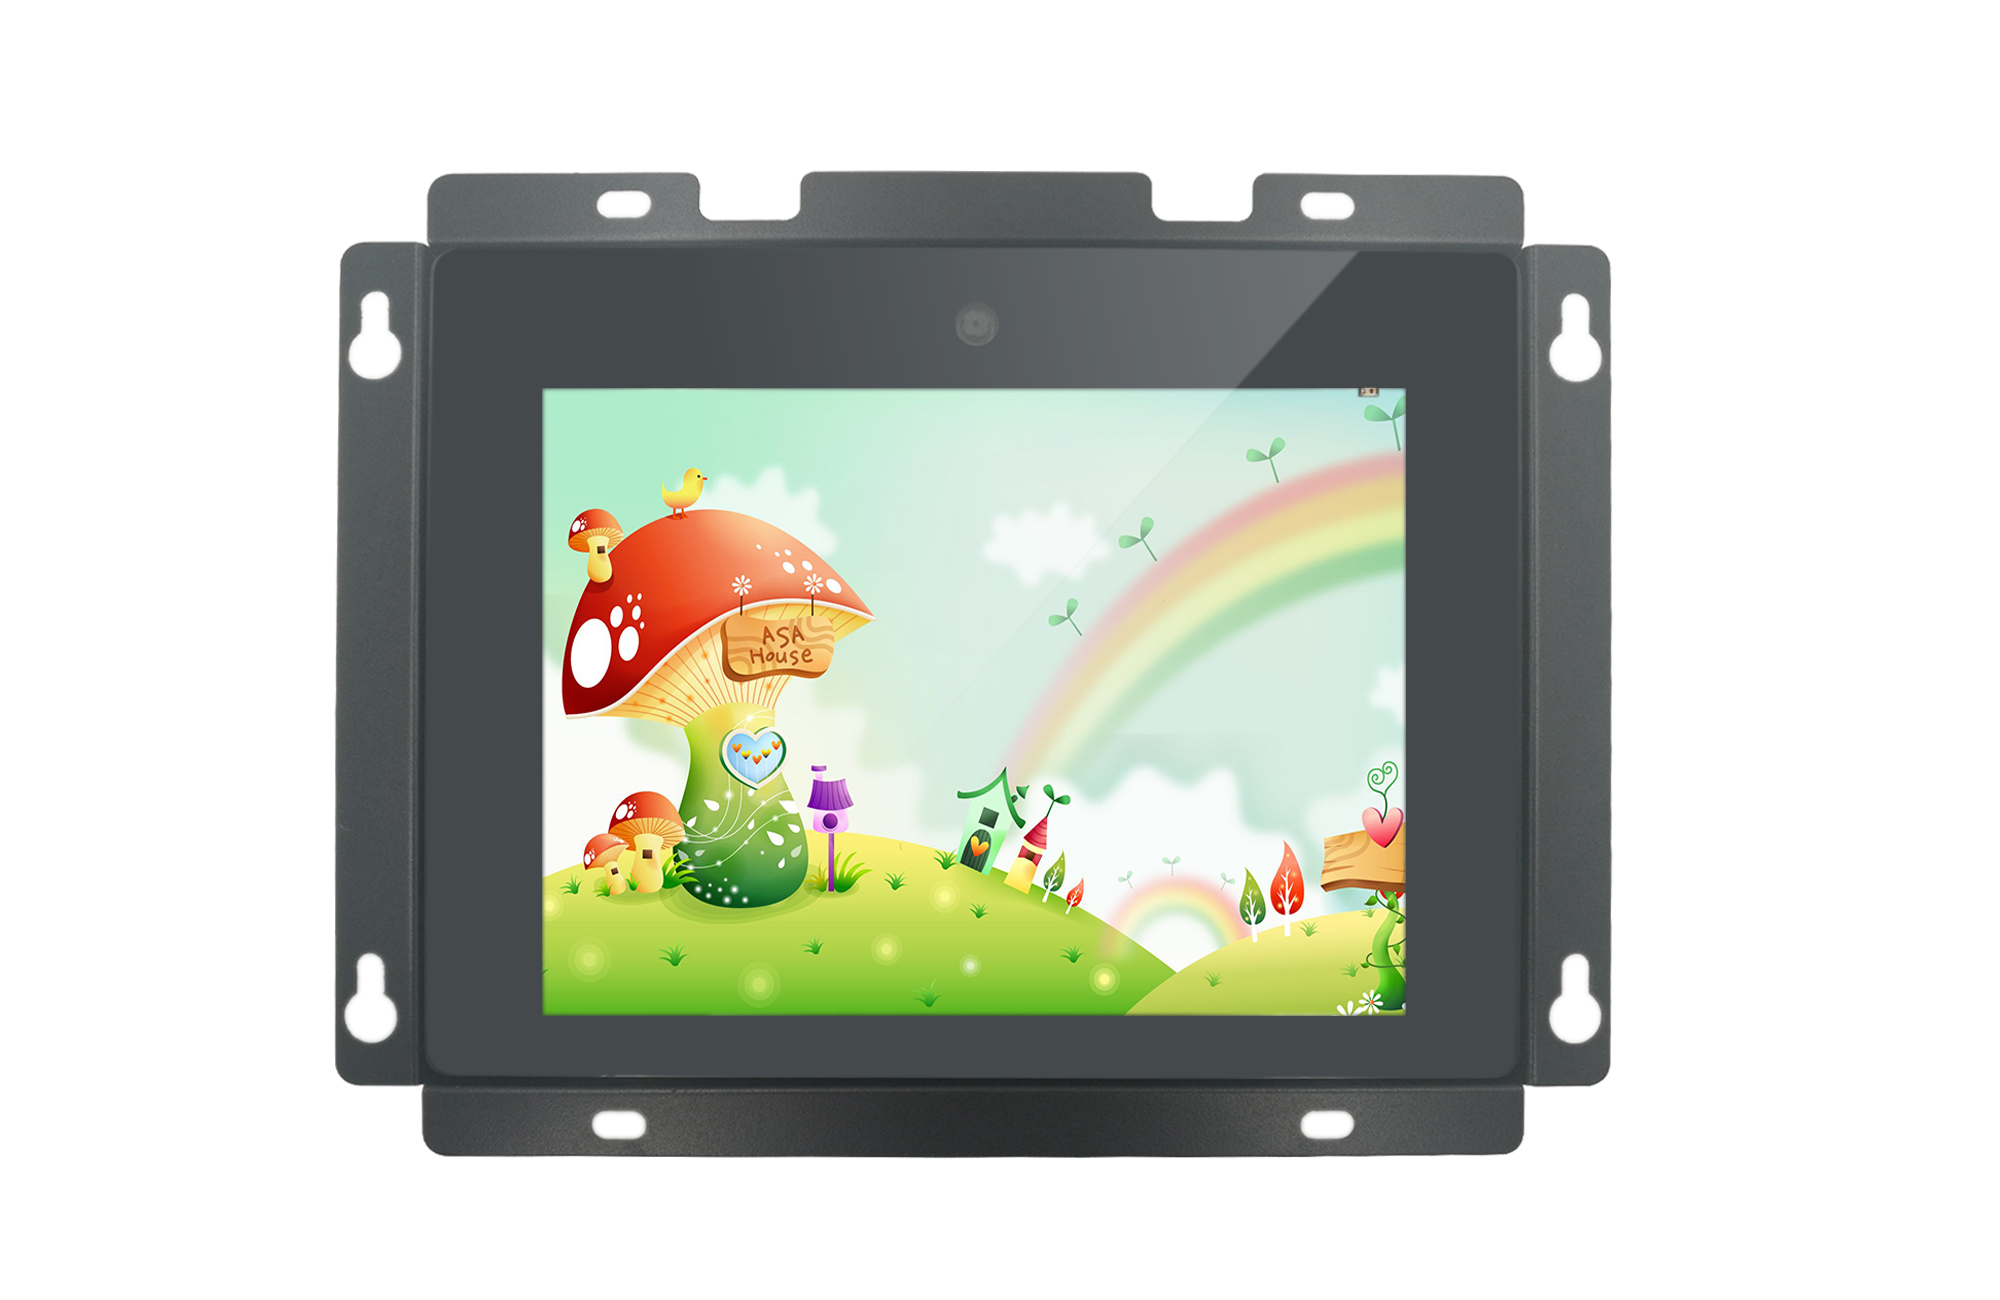 8.4 Inch Android Based All-In-One Panel PC